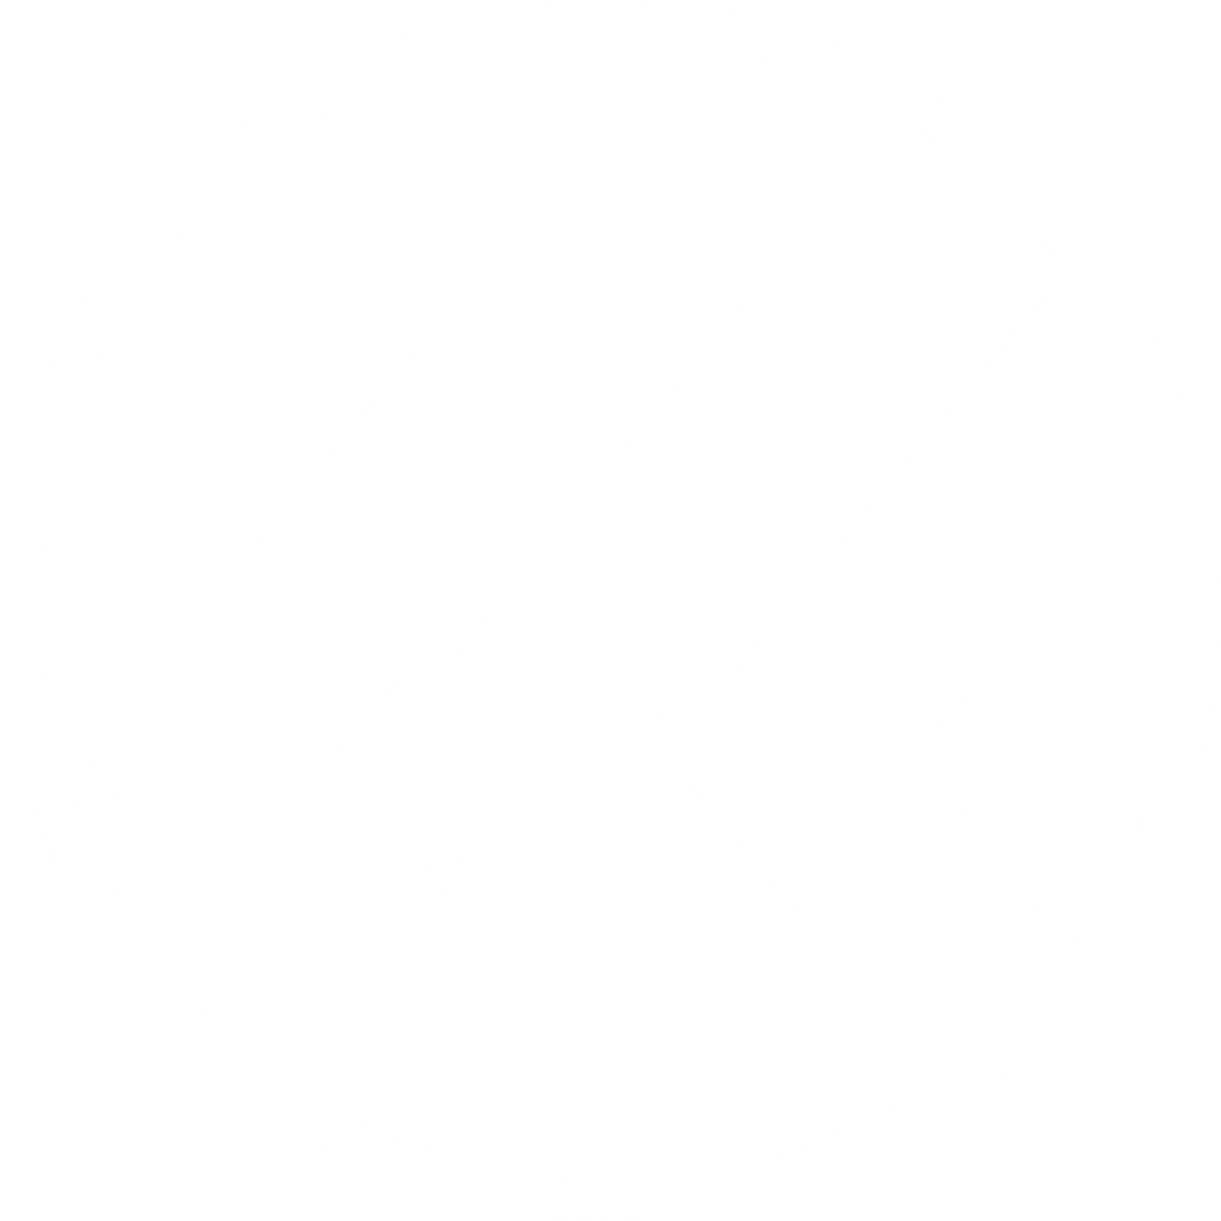 C_Suite_Icon_White.png